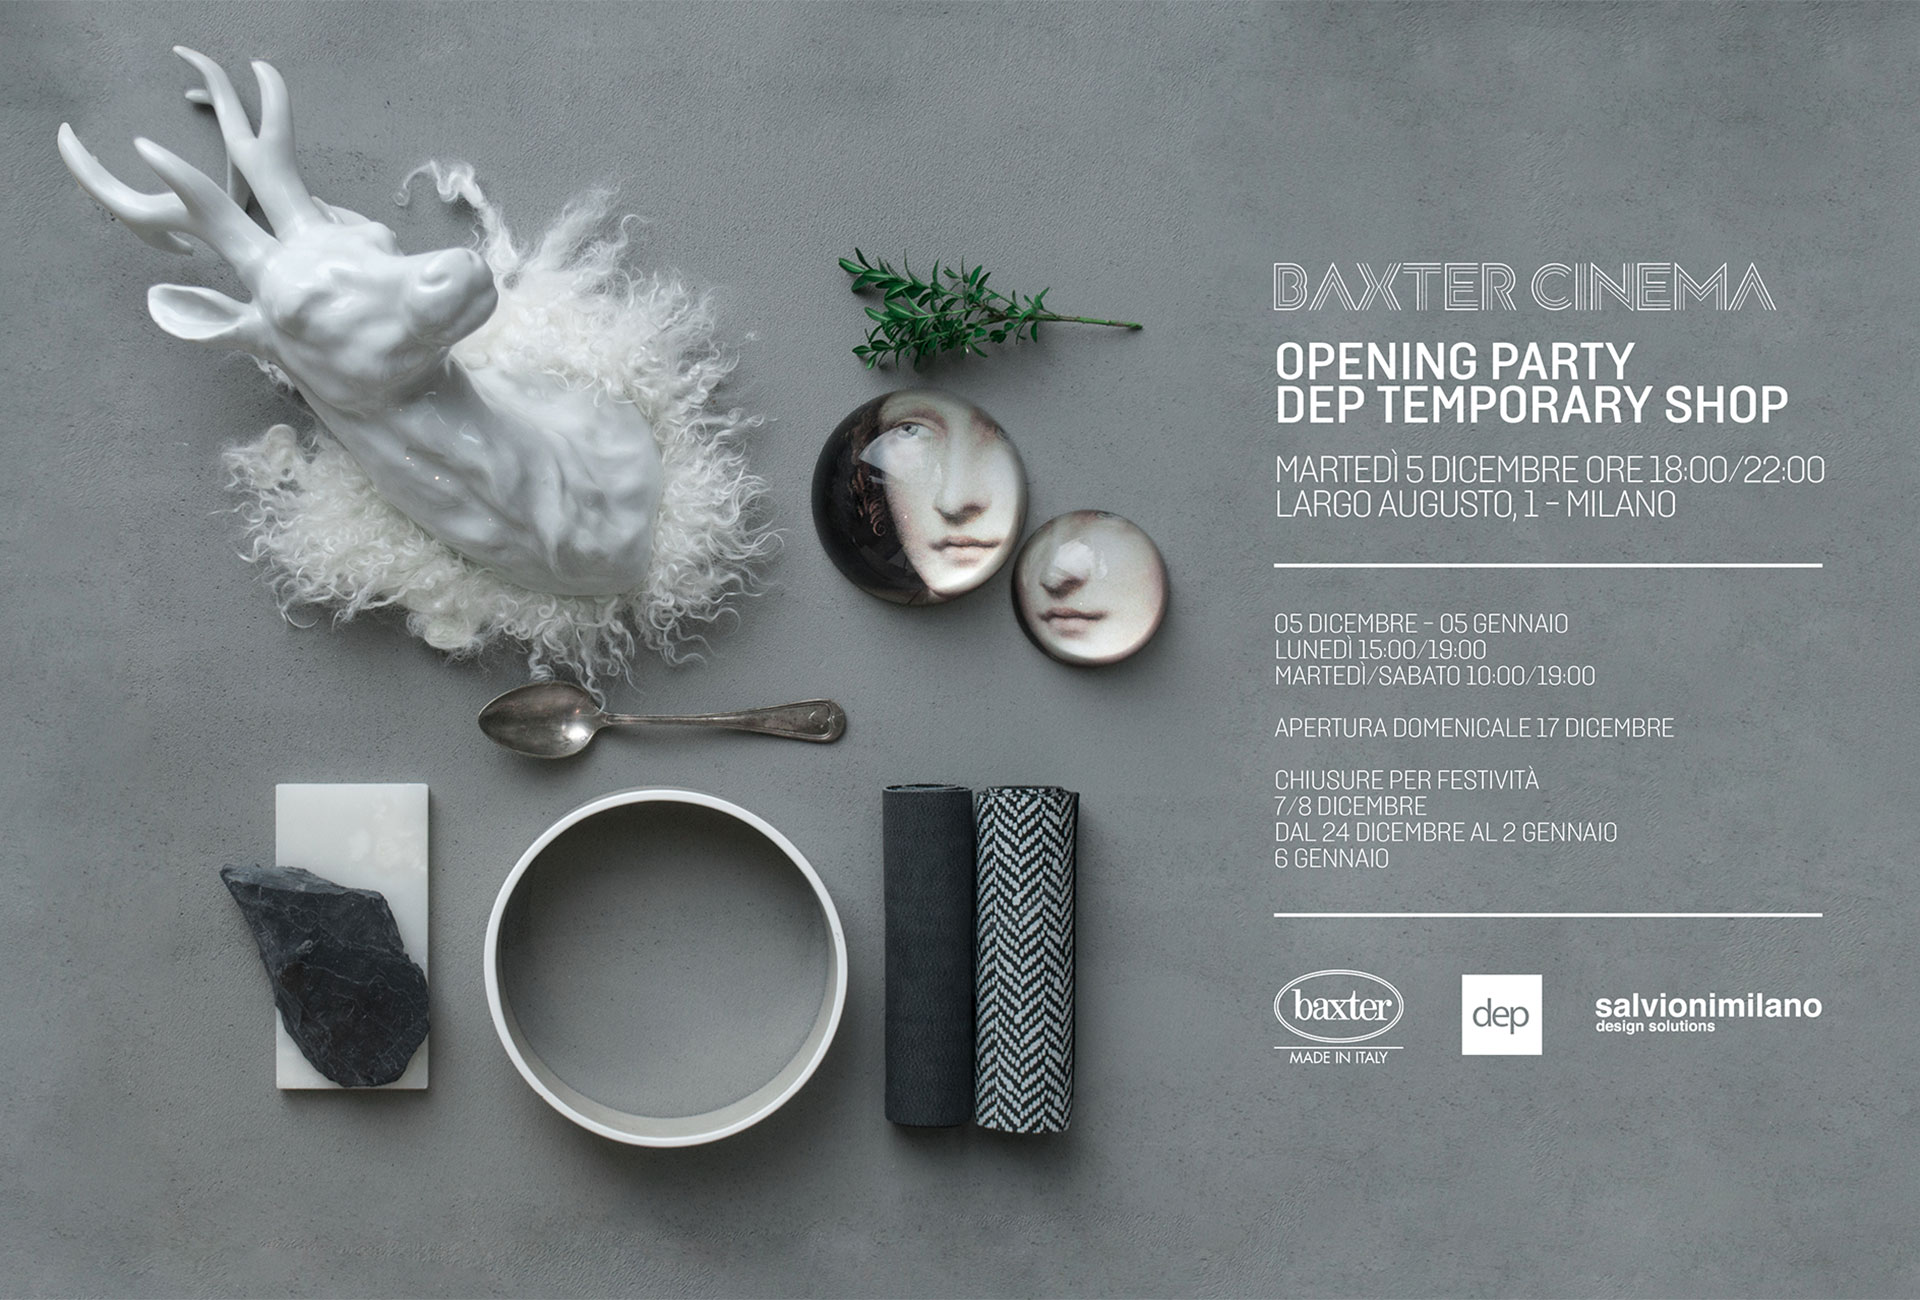 BAXTER CINEMA & DEP TEMPORARY SHOP: UN REGALO DI DESIGN